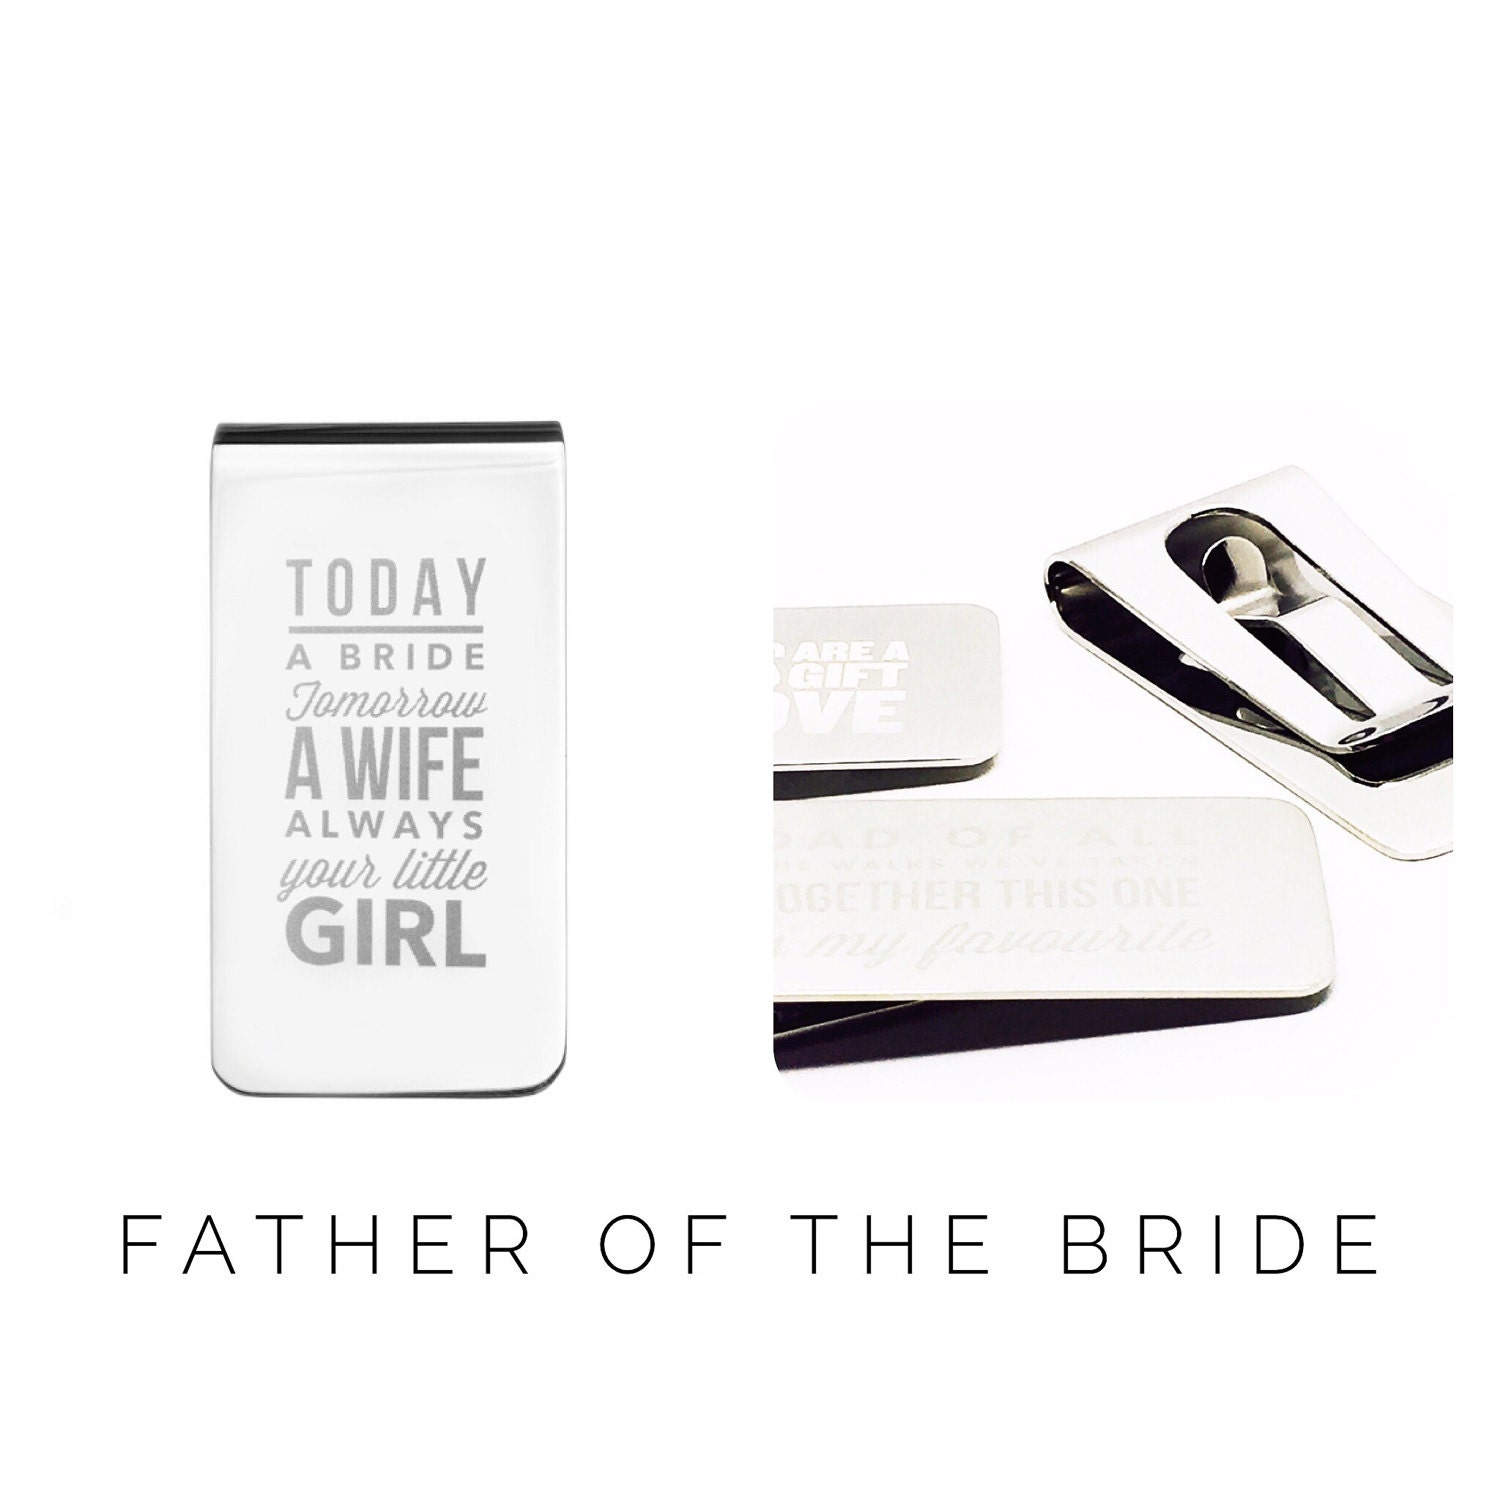 Father of the Bride Gift  Personalised Money Clip  Wedding Gift  Personalized Money Clip (W255)